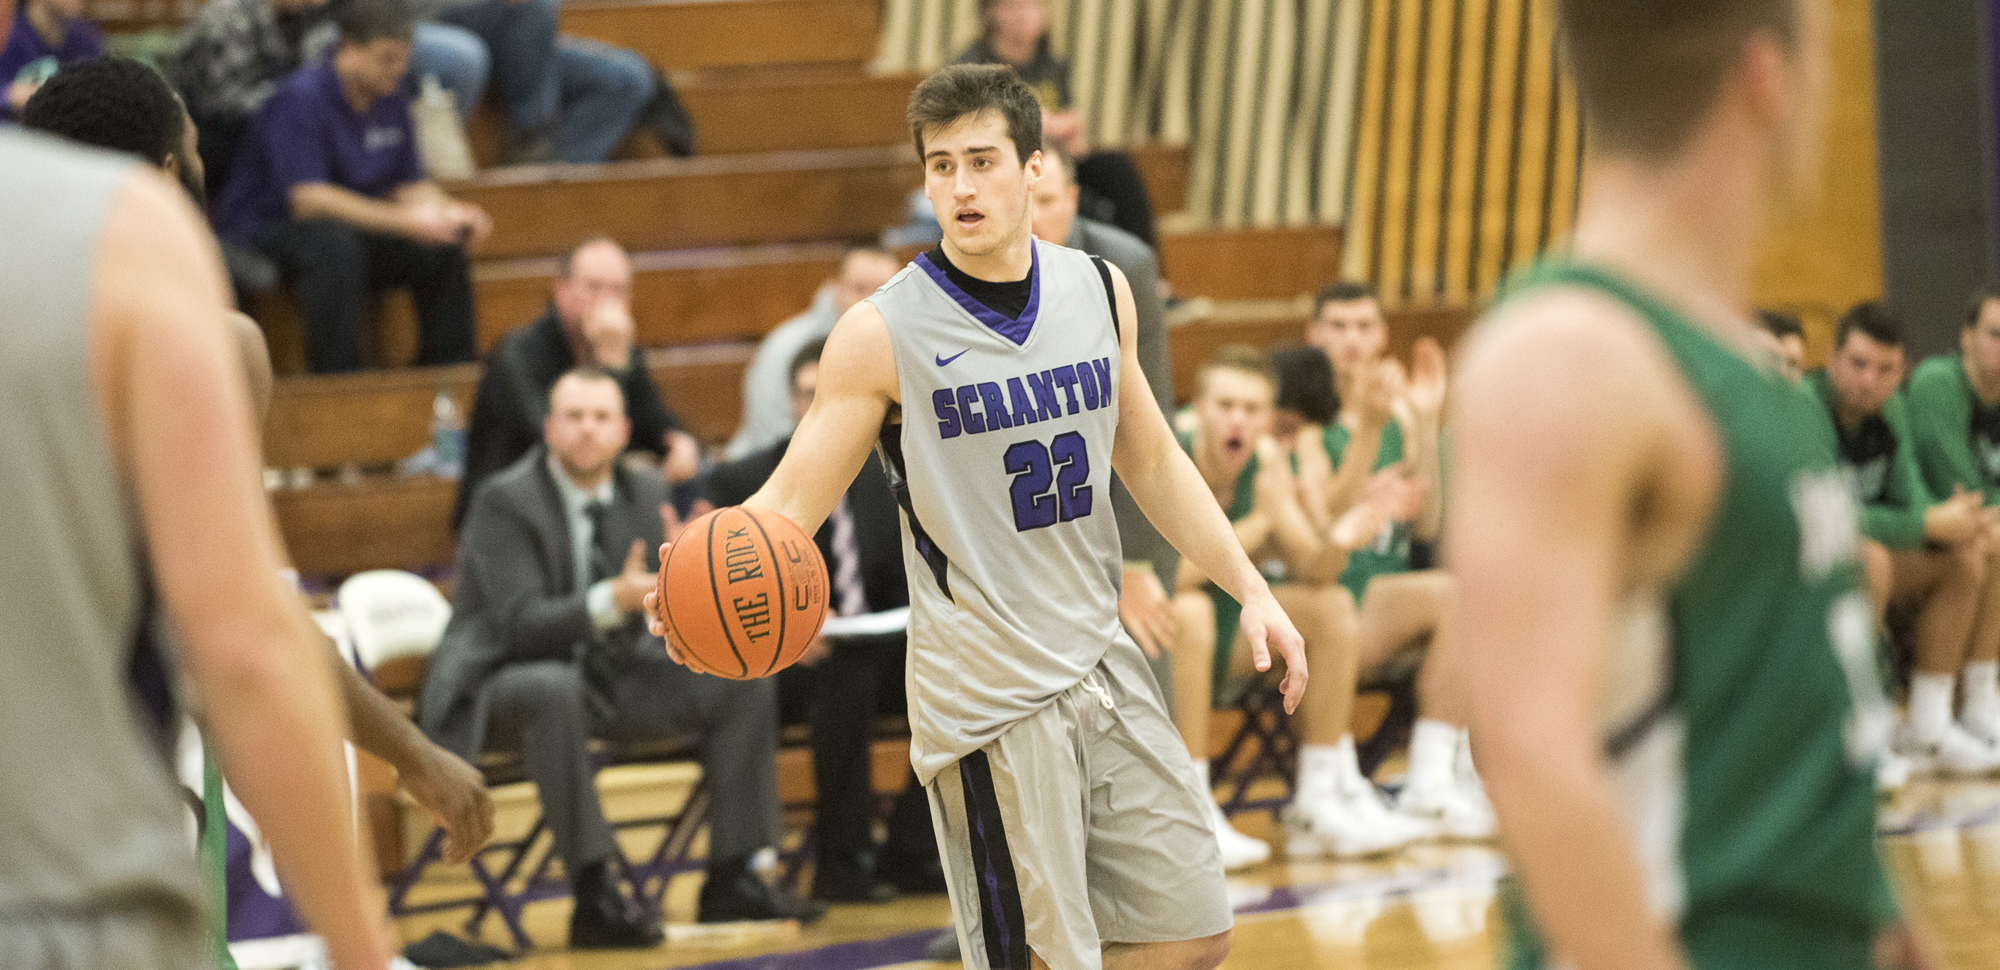 Junior guard Kyle DeVerna led the Royals with 20 points on Thursday night at Drew.